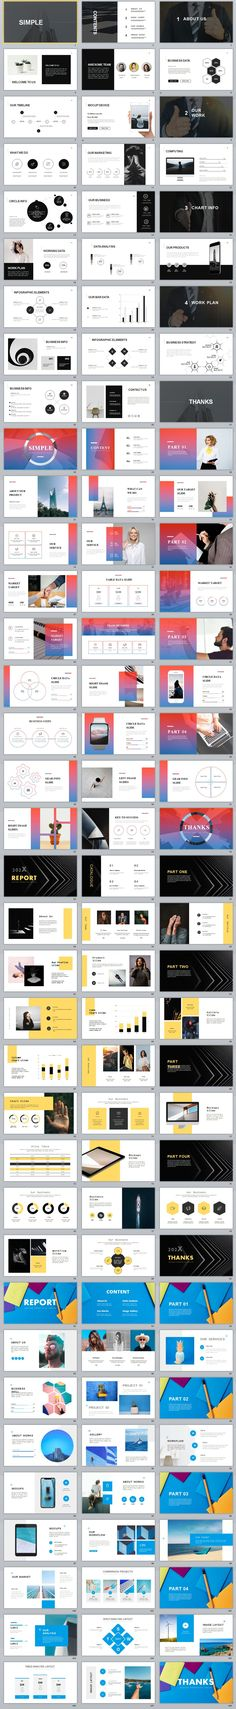 powerpoint 4 in 1 simple useful PowerPoint template This is a simple and clean Powerpoint template that can be used for any type of presentation: business, portfolio, corporate, branding, Powerpoint Design Templates, Professional Powerpoint Templates, Keynote Template, Powerpoint Presentation Slides, Presentation Design, Powerpoint Games, Tool Design, Web Design, Design Art